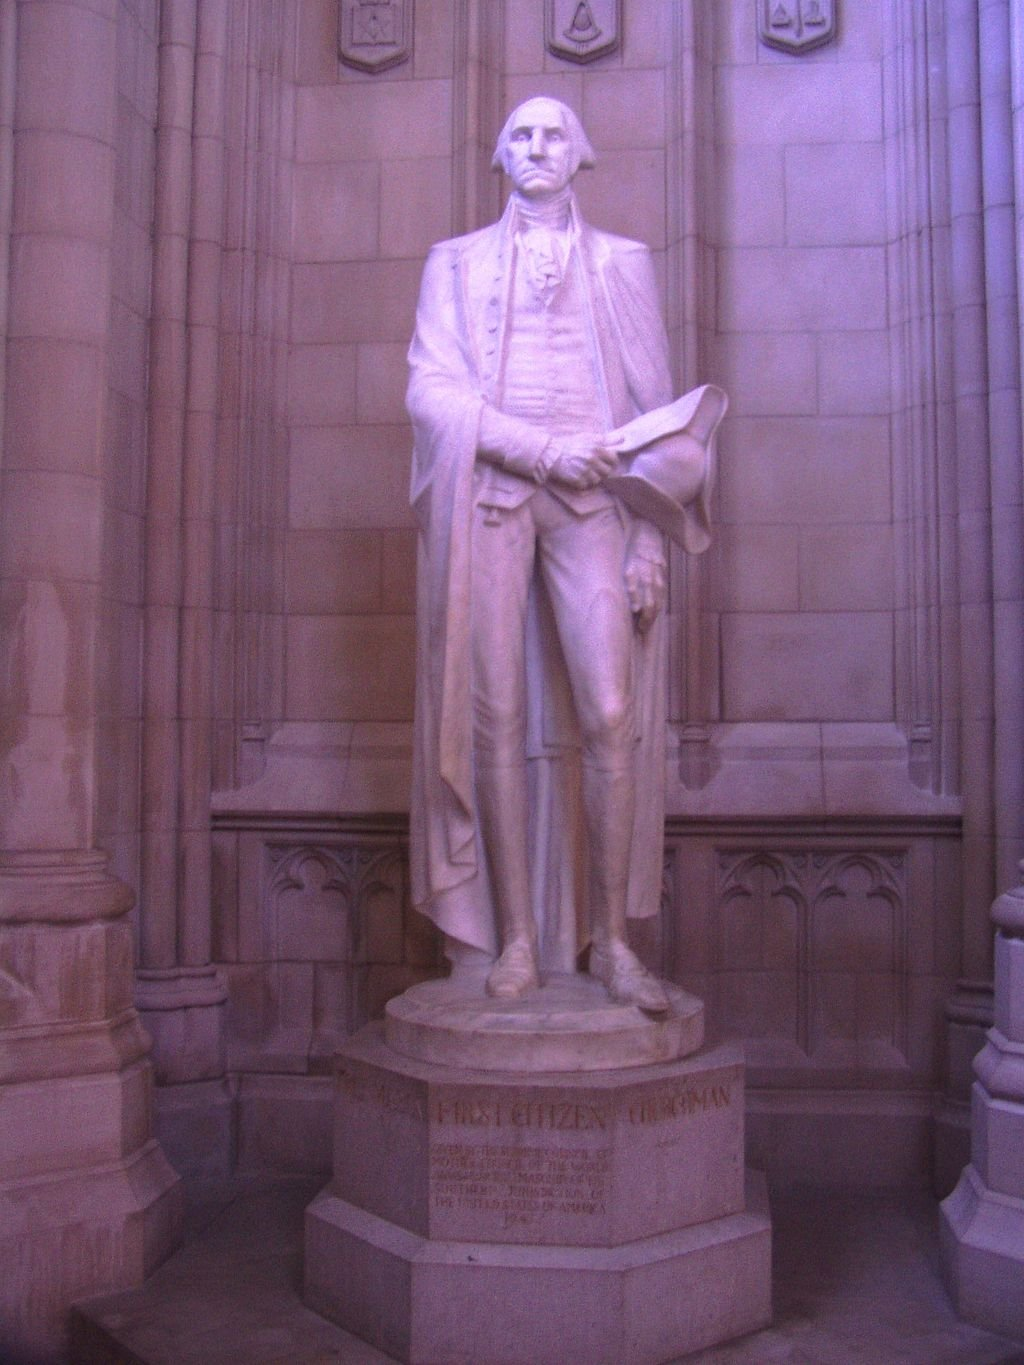 A statue of President George Washington, who planned the Cathedral, stands in an alcove where symbols such as his coat of arms can be found. Photo by Danvera, English Wikimedia.